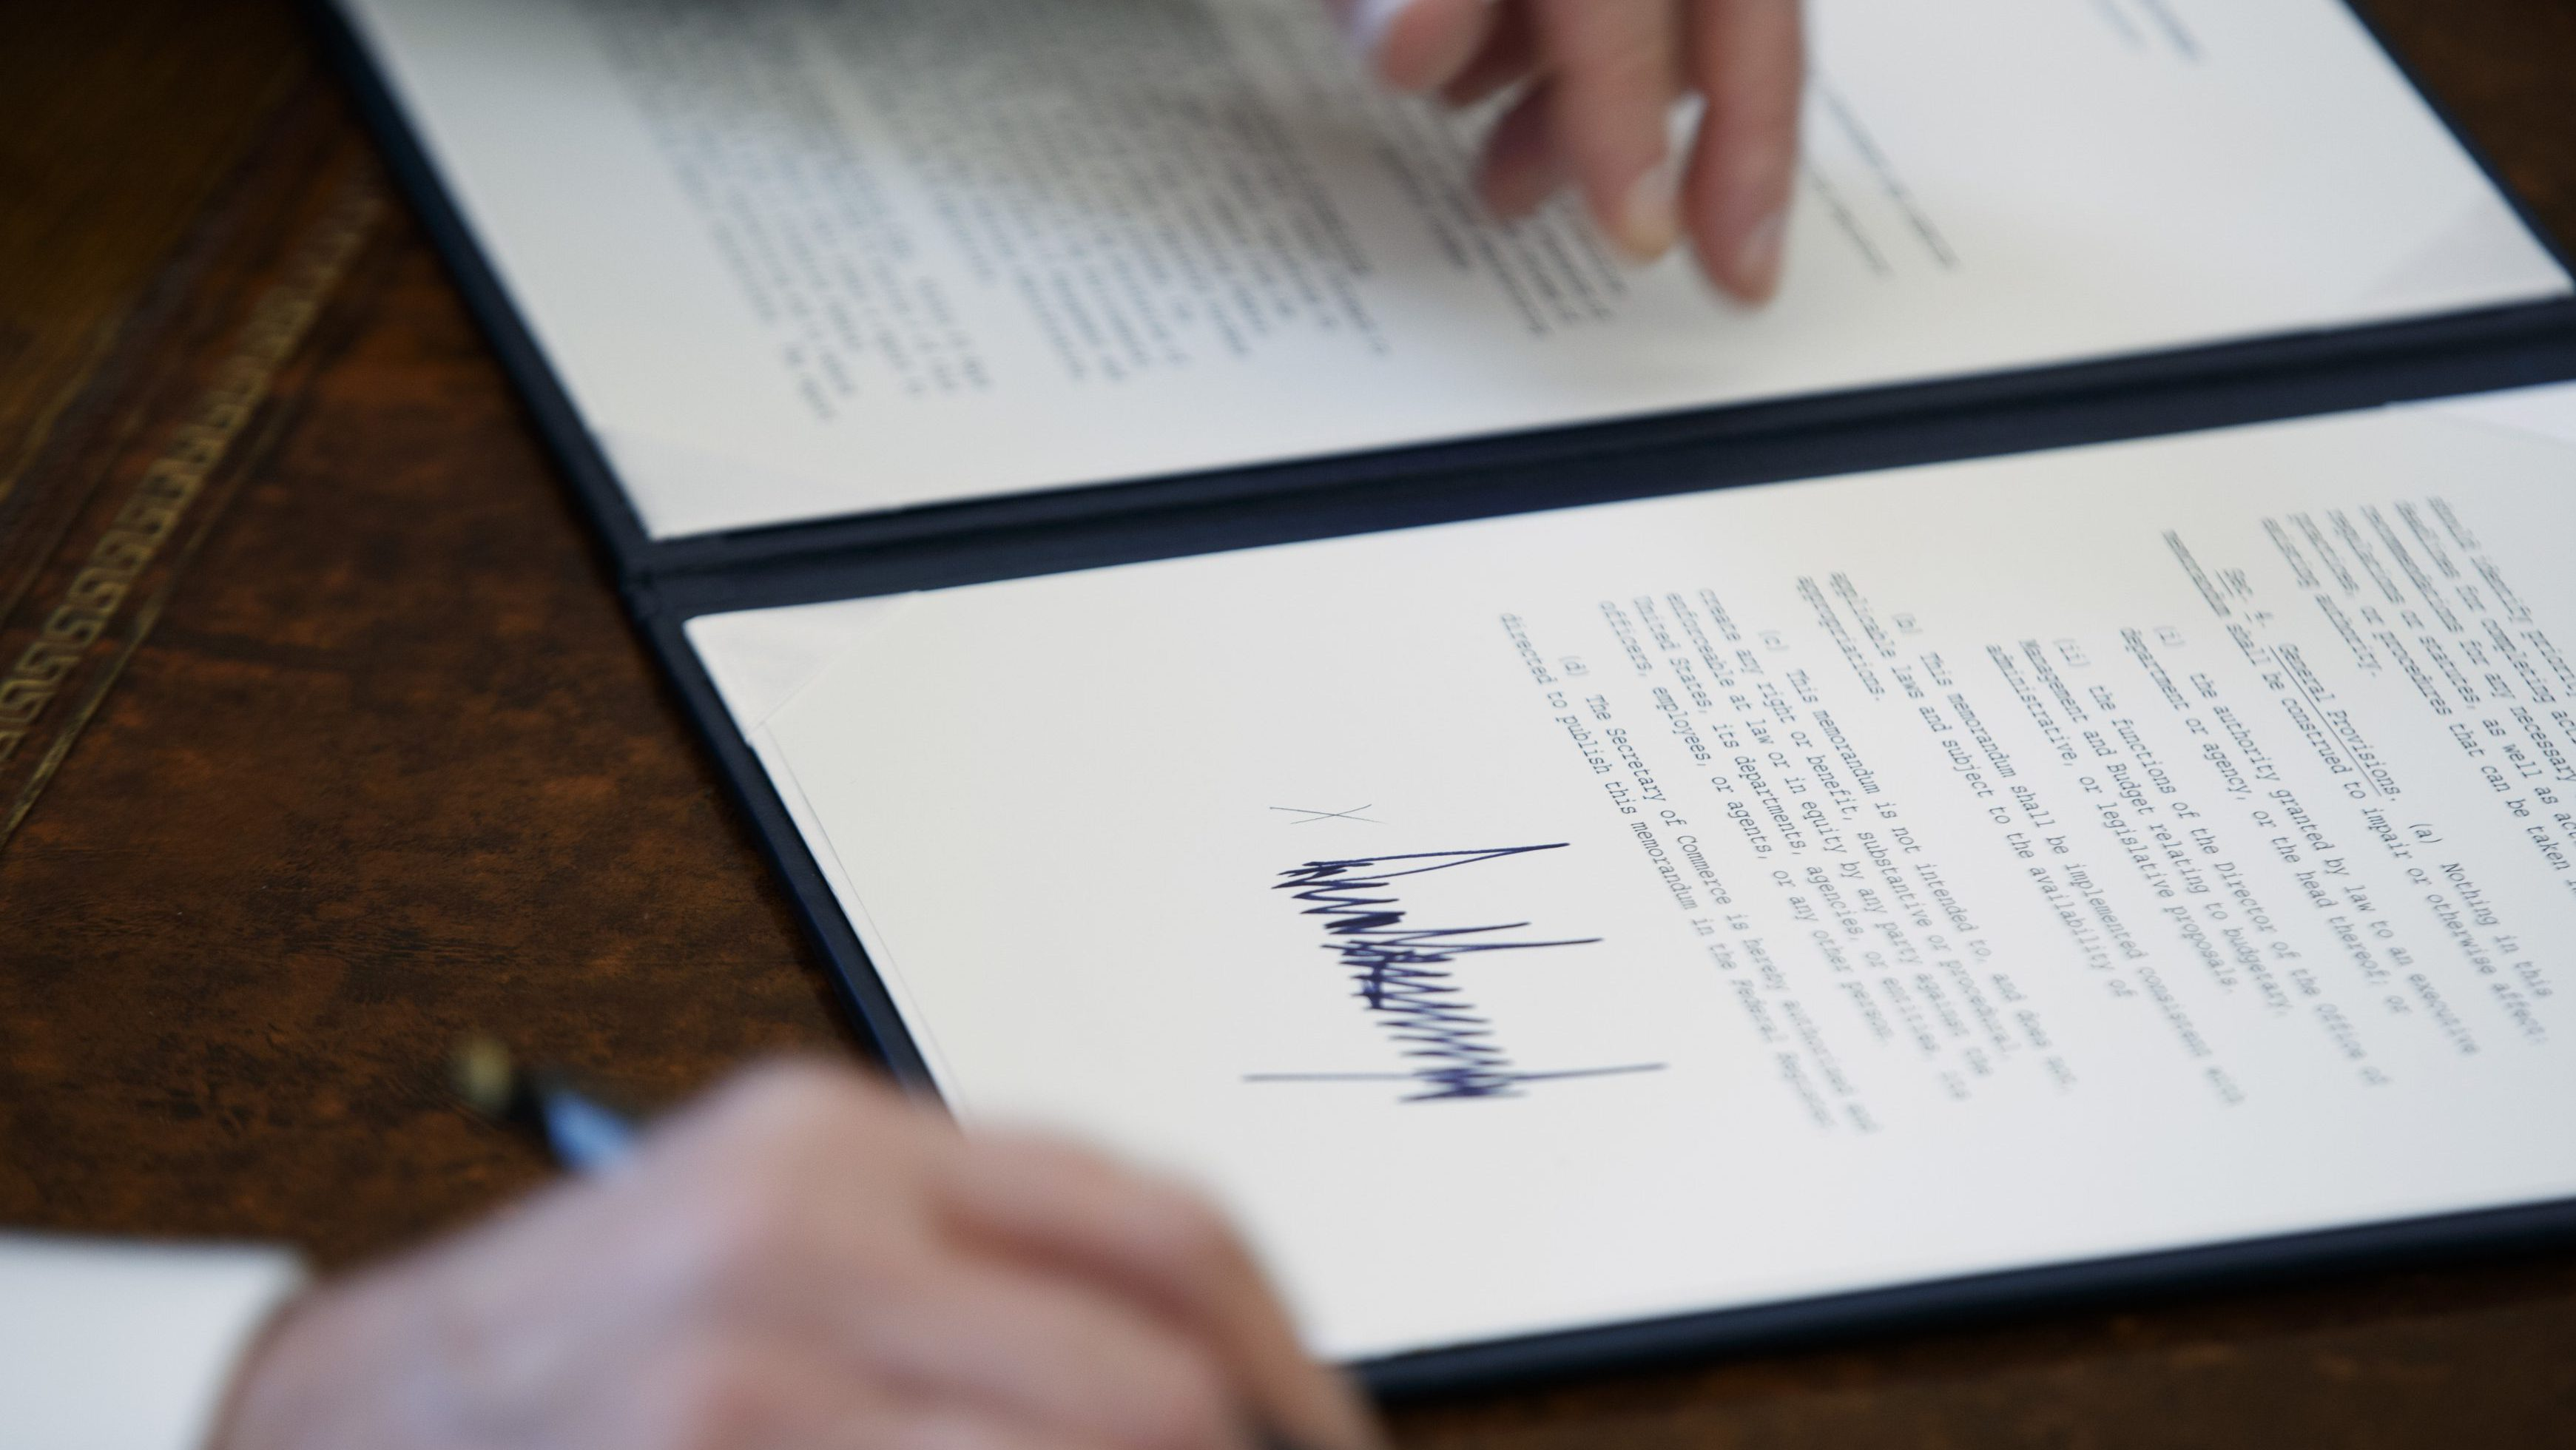 The signature of President Donald Trump is seen on an executive order in Oval Office of the White House.